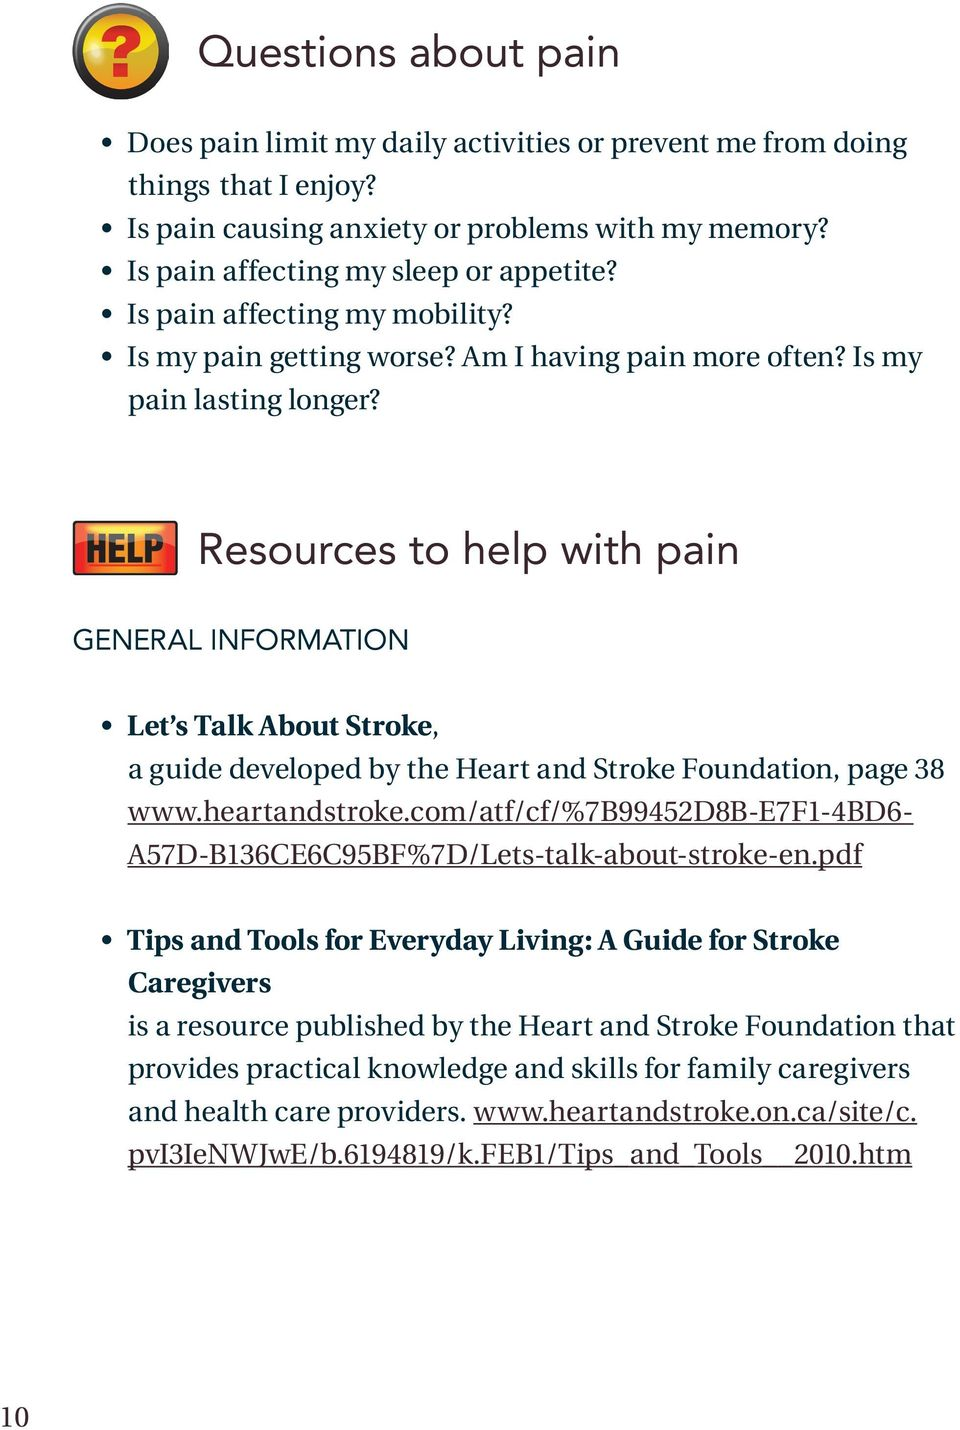 Resources to help with pain GENERAL INFORMATION Let s Talk About Stroke, a guide developed by the Heart and Stroke Foundation, page 38 www.heartandstroke.